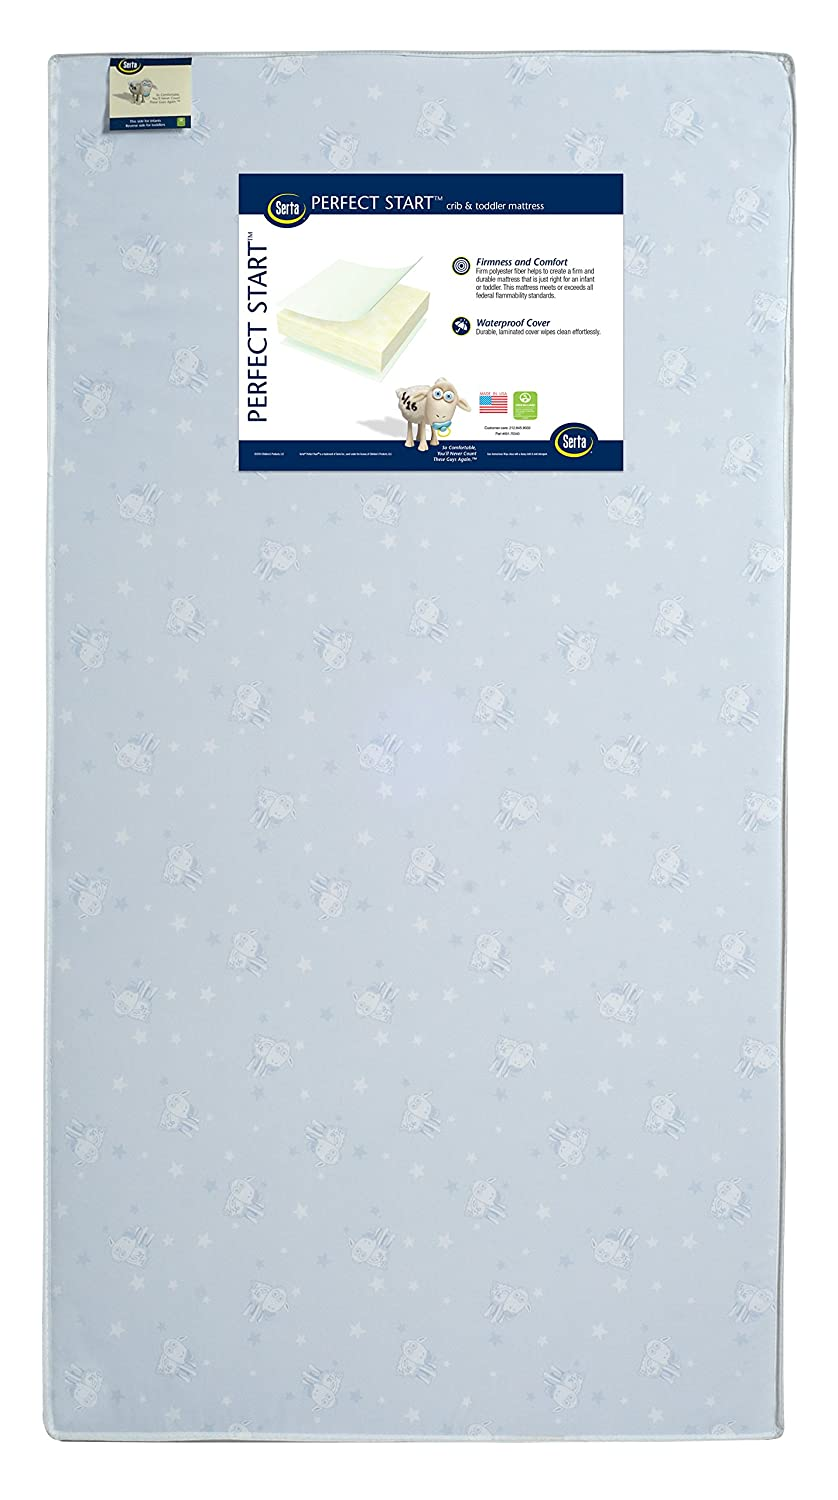 Amazon.com : Serta Sertapedic Crib Mattress Liner Pads (Pack of 2)| Extra Protection for Babys Crib with Nanotex Technology| 100% Waterproof, White : Baby